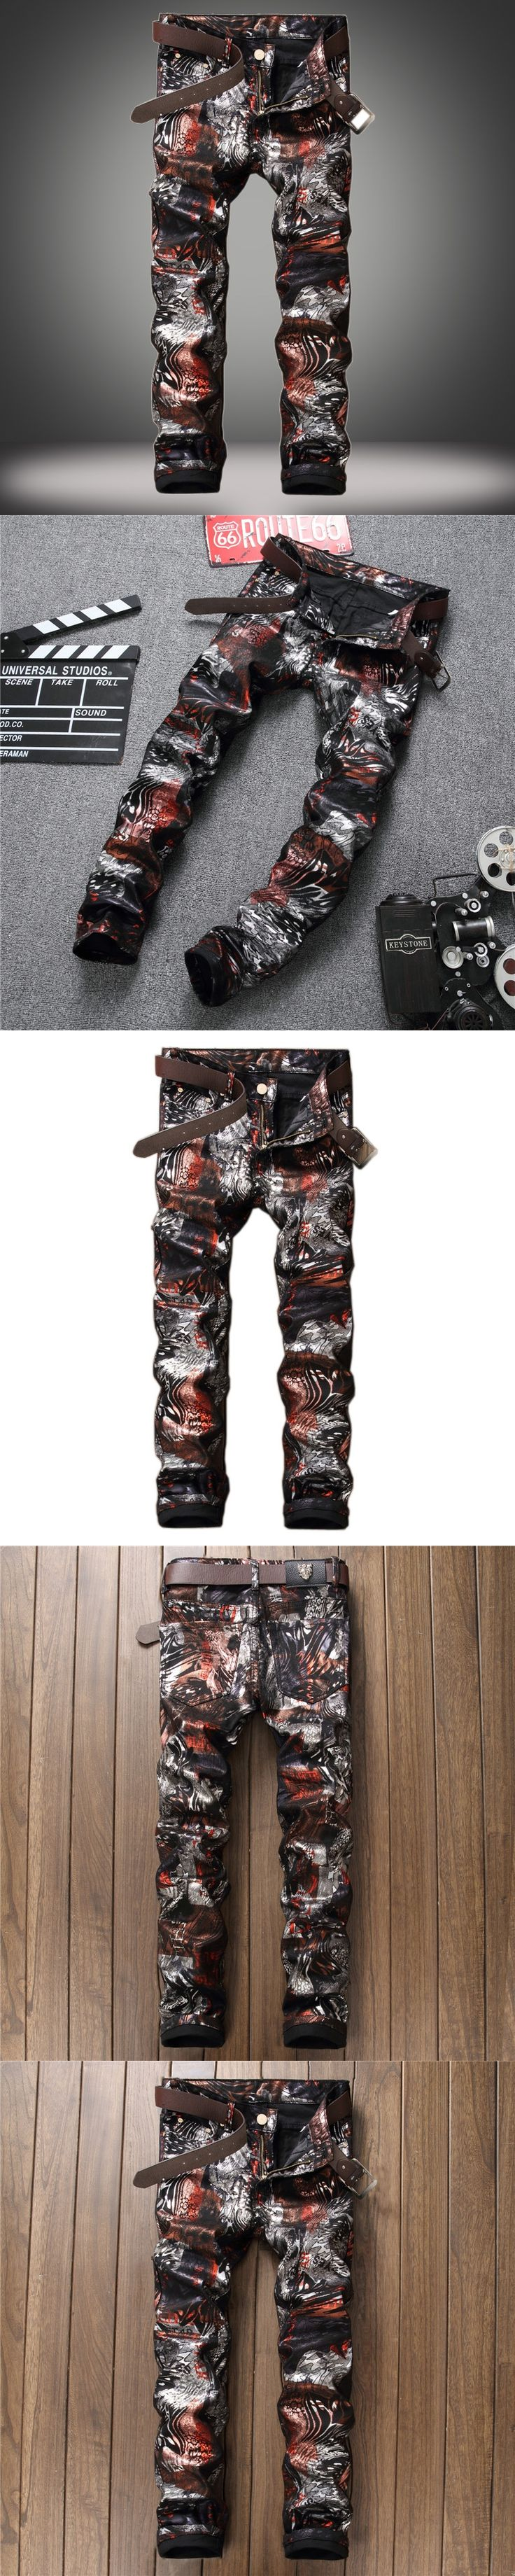 Hot Fashion Mens Ripped Biker Jeans Print Slim Fit Motorcycle Jeans Men's Skinny Denim Causal Jeans Pants Trouses Size 29-38